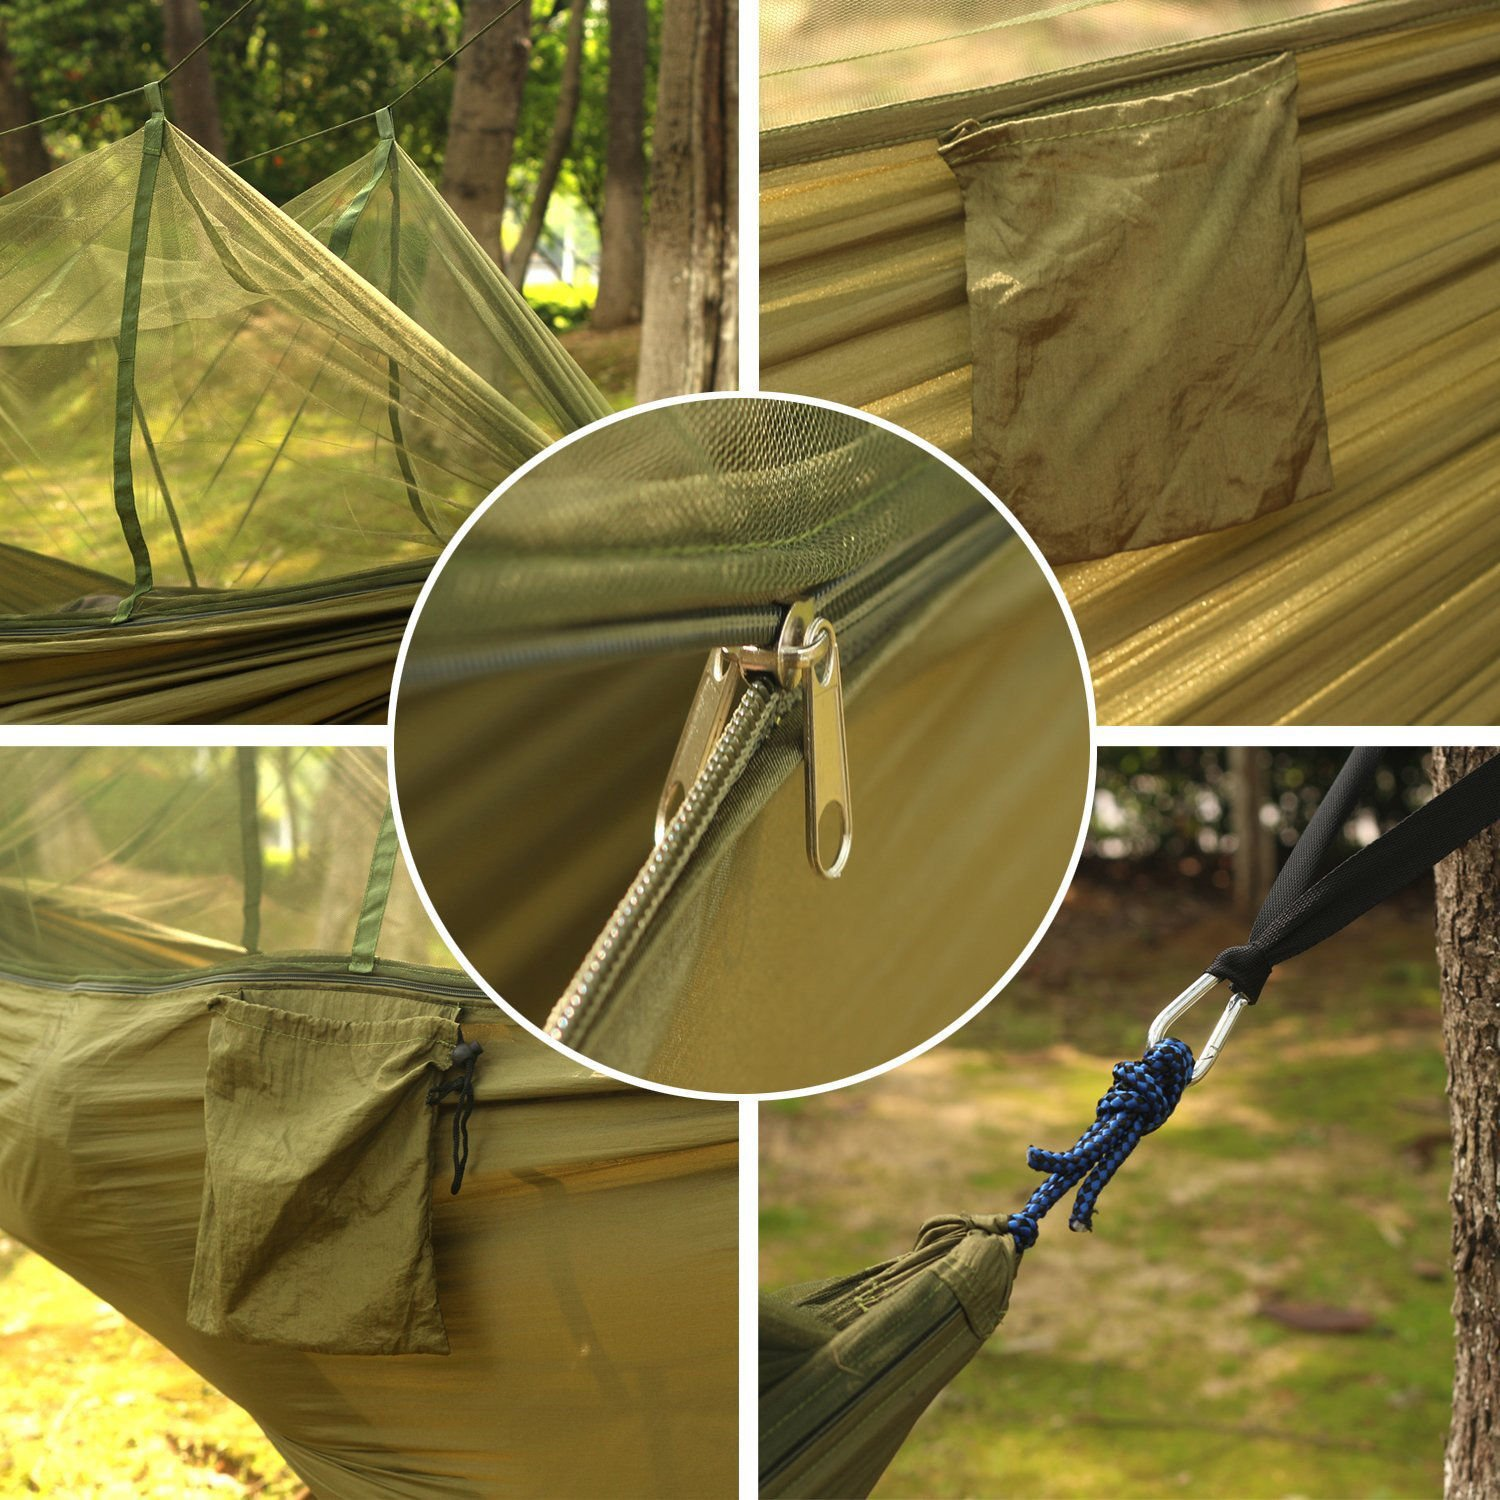 LOONFREE Camping Hammock with Mosquito Net - 2 Person Portable High Strength Outdoor Travel Hammock for Camping Hiking Backpacking (With One Free Compass Wrist)